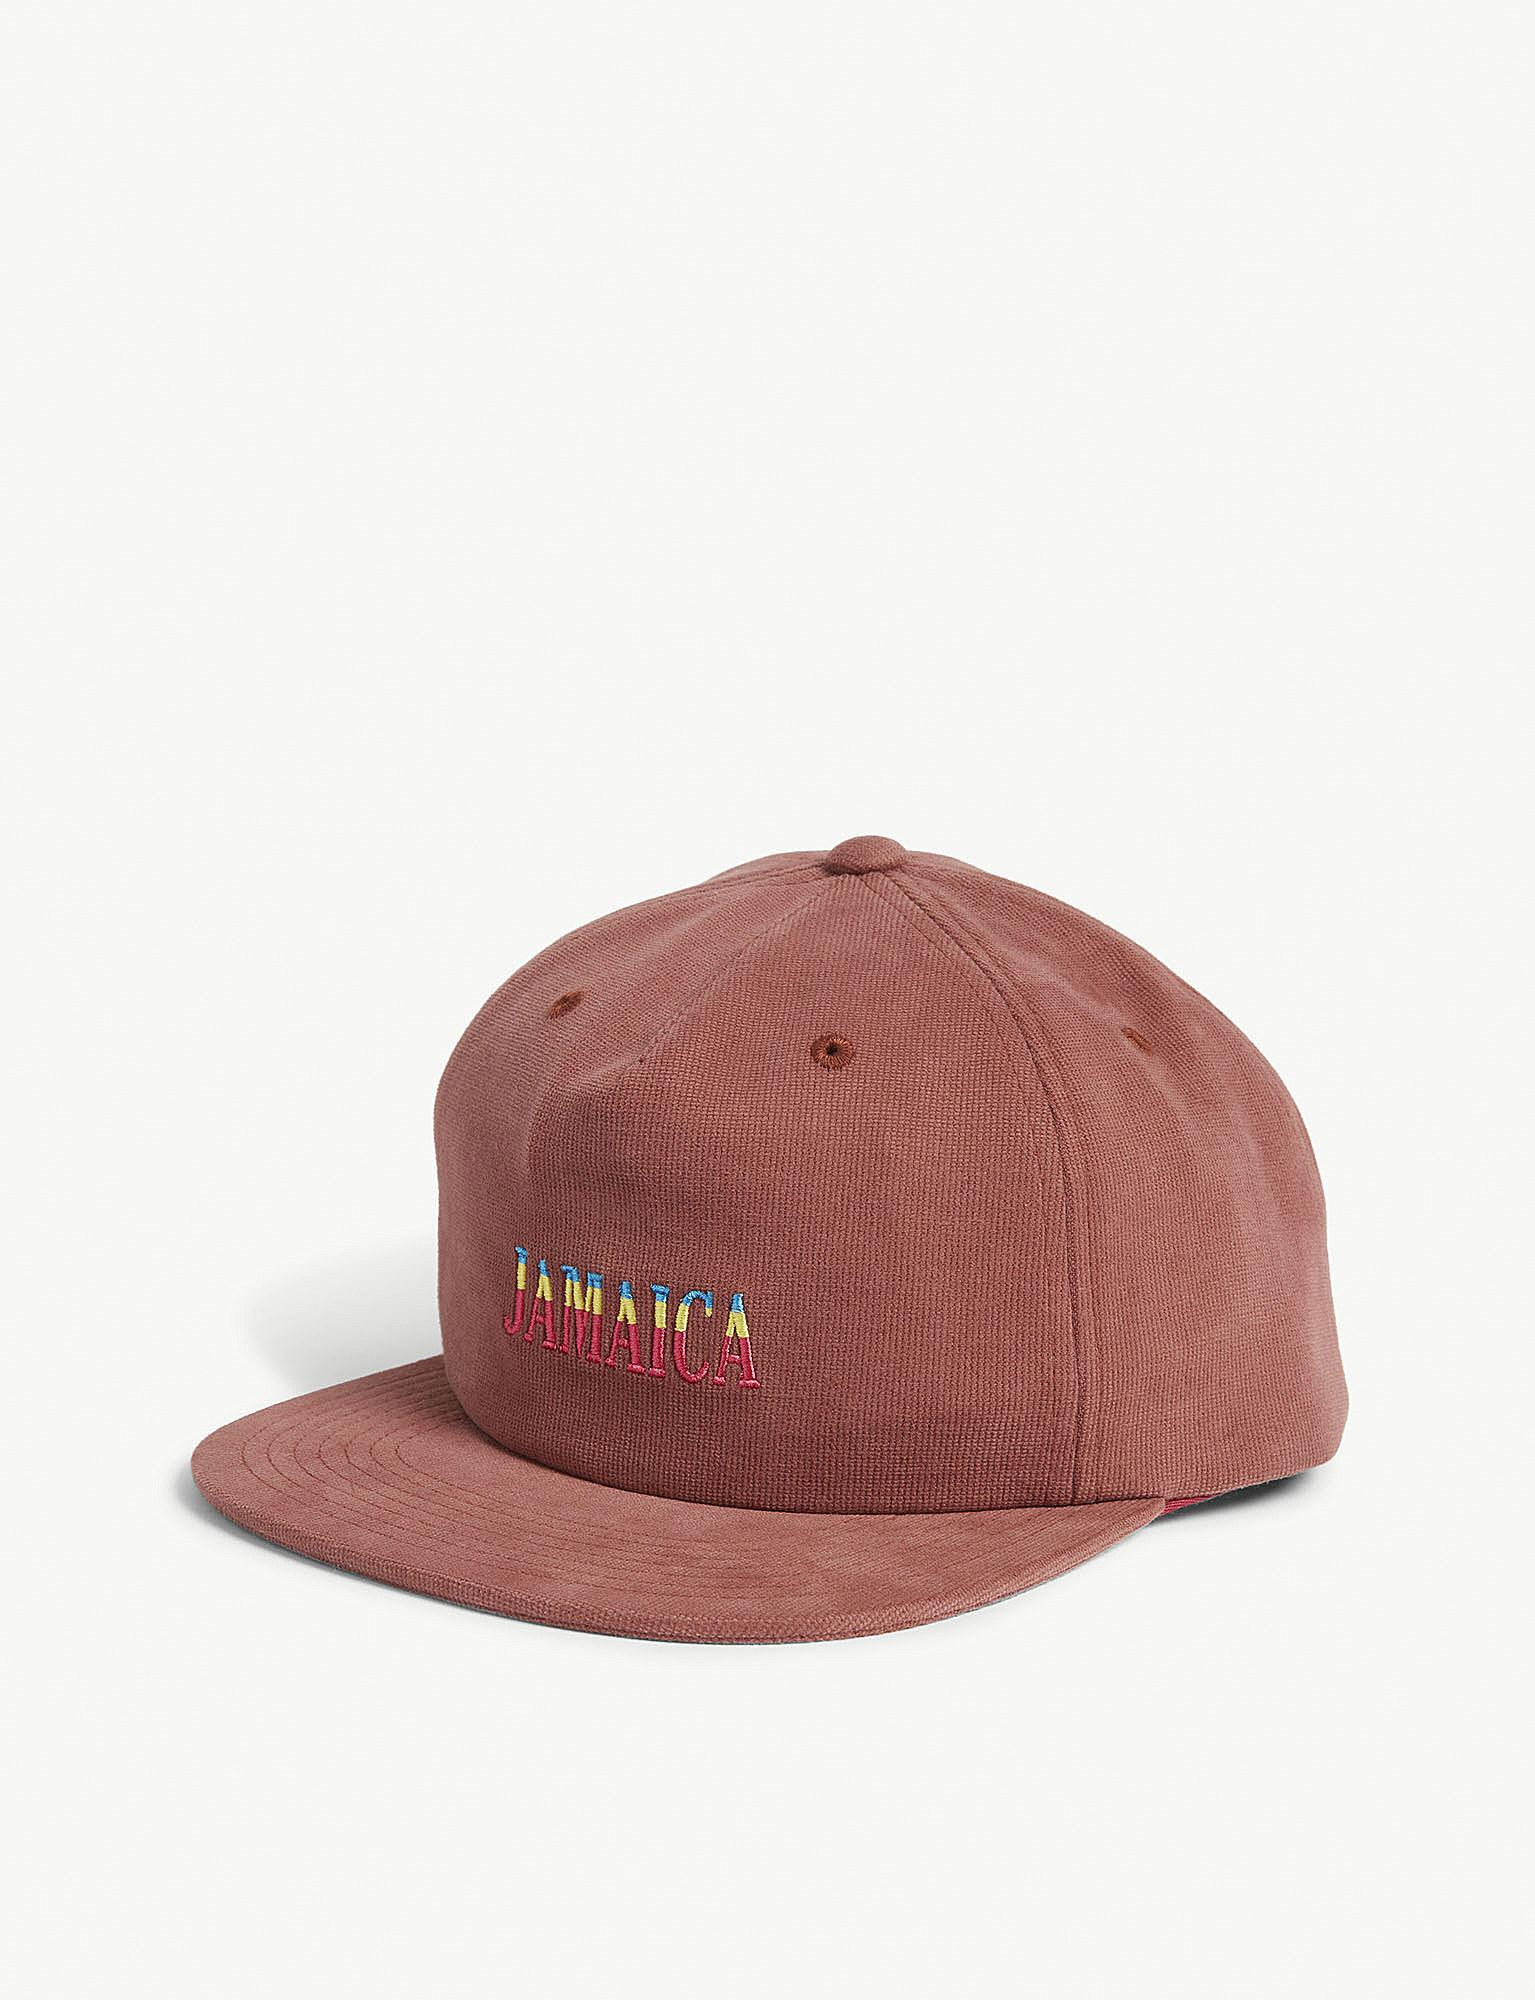 cf43ad2e4b2 Lyst - Stussy Jamaica Corduroy Cap in Brown for Men